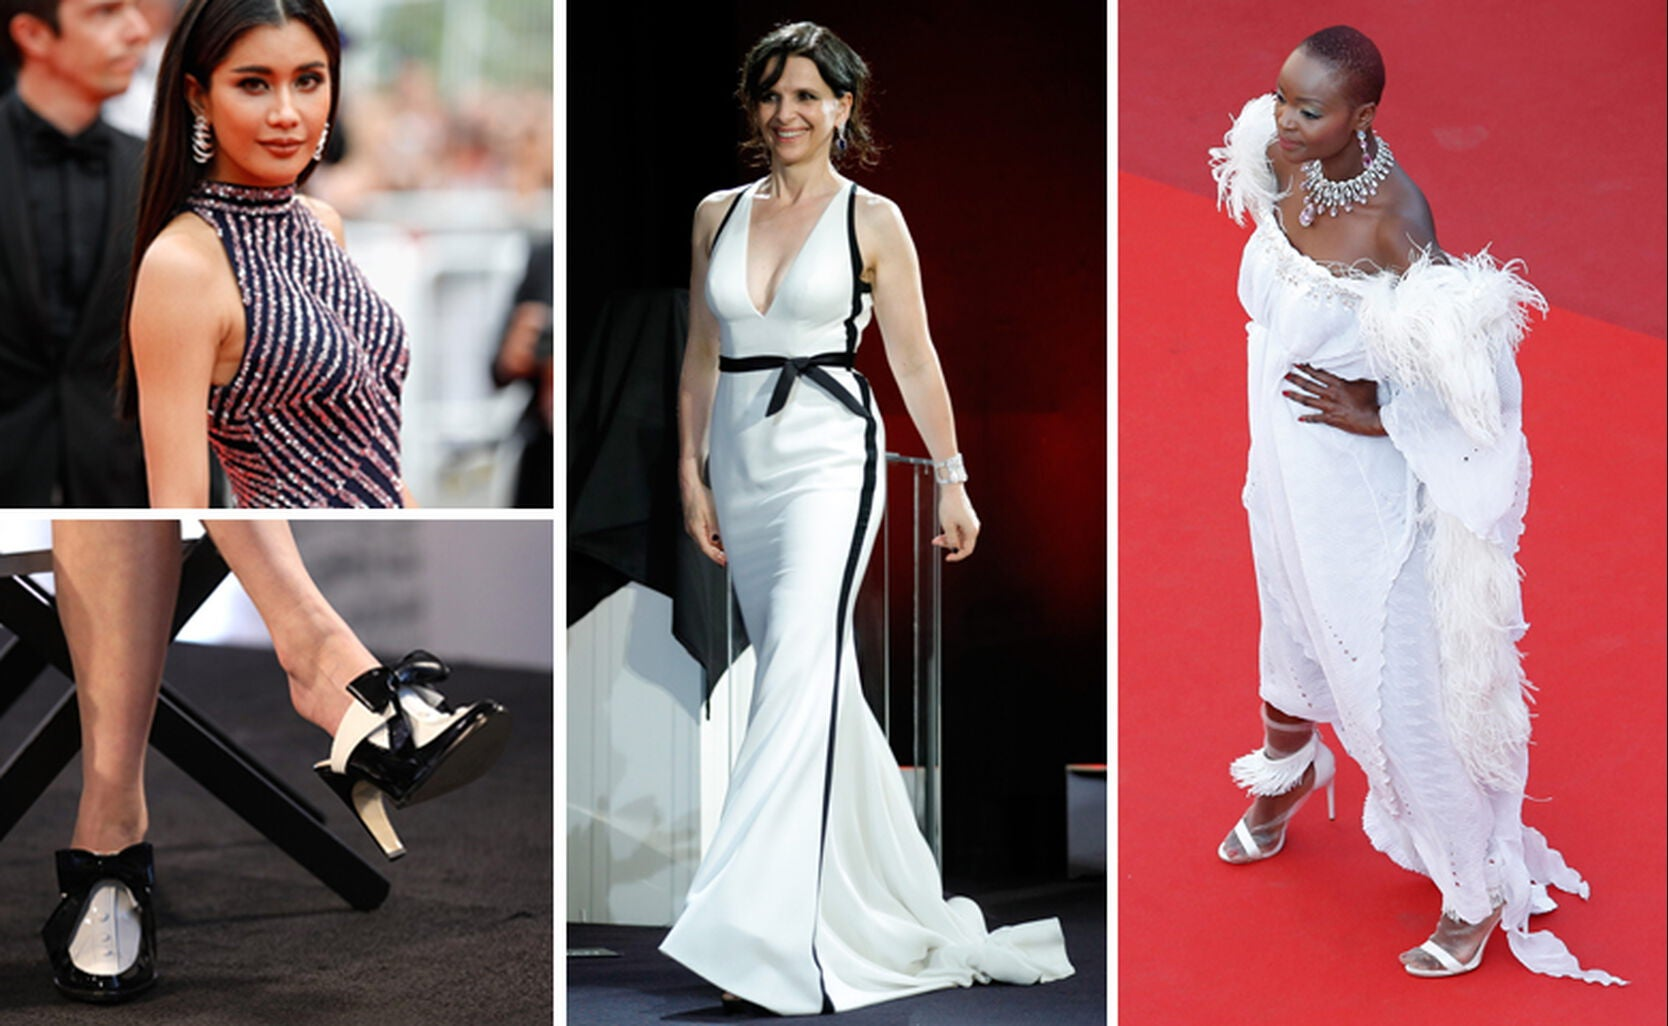 Praya Lundberg; SHOES – Natasha Lyonne; Juliette Binoche and Miriam Odemba